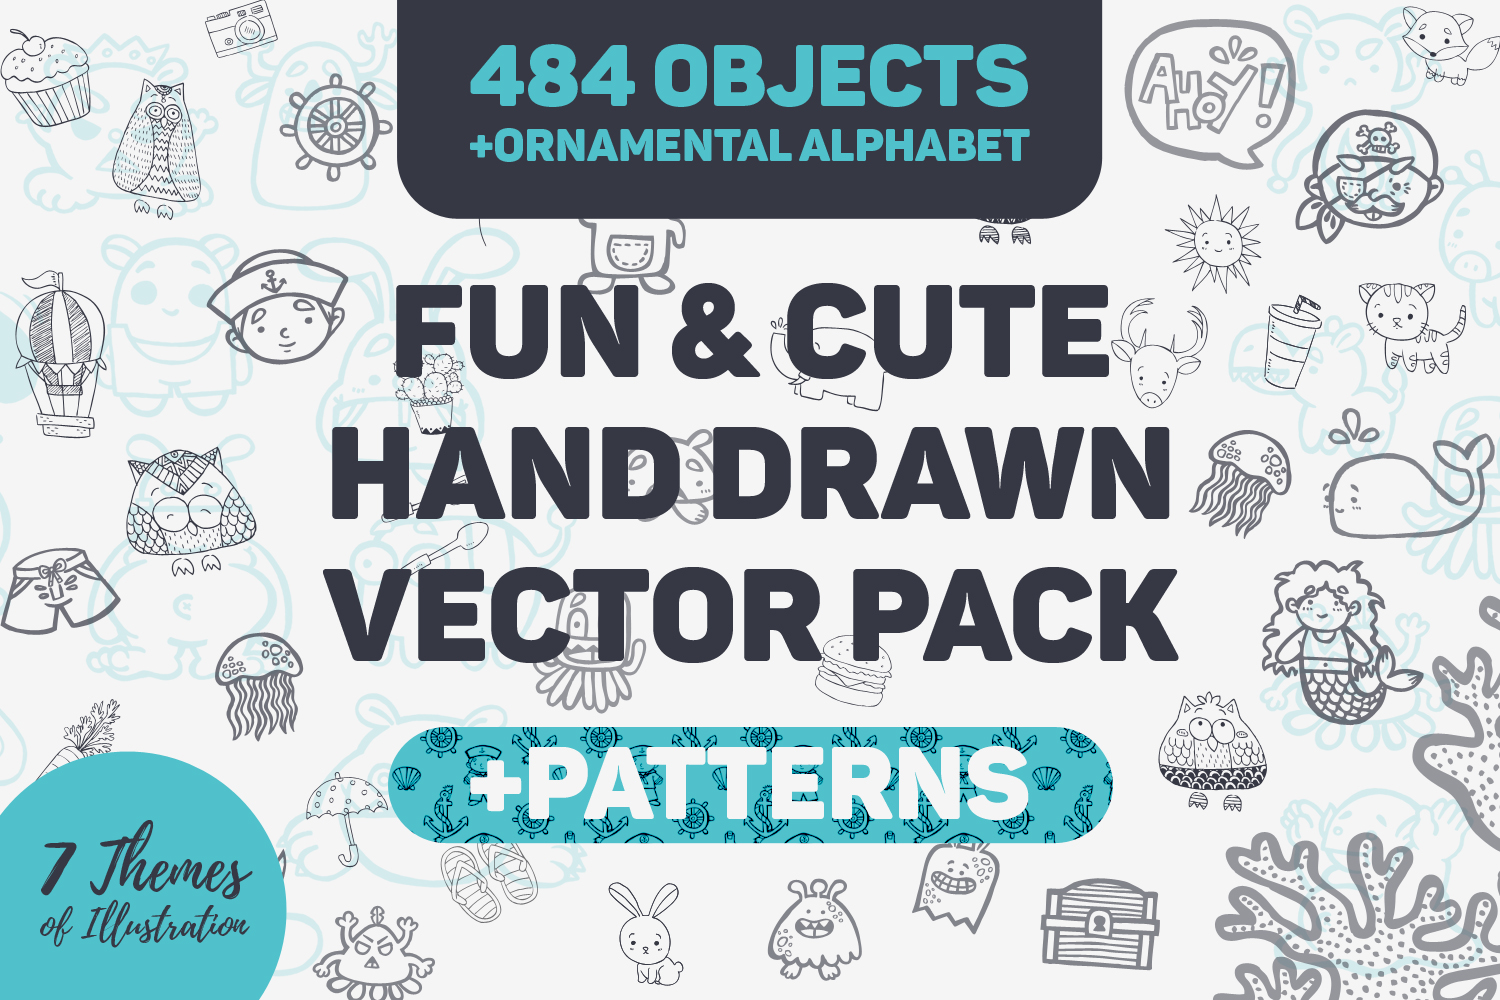 Fun & Cute Hand Drawn Vector Pack Graphic By Nasir Udin